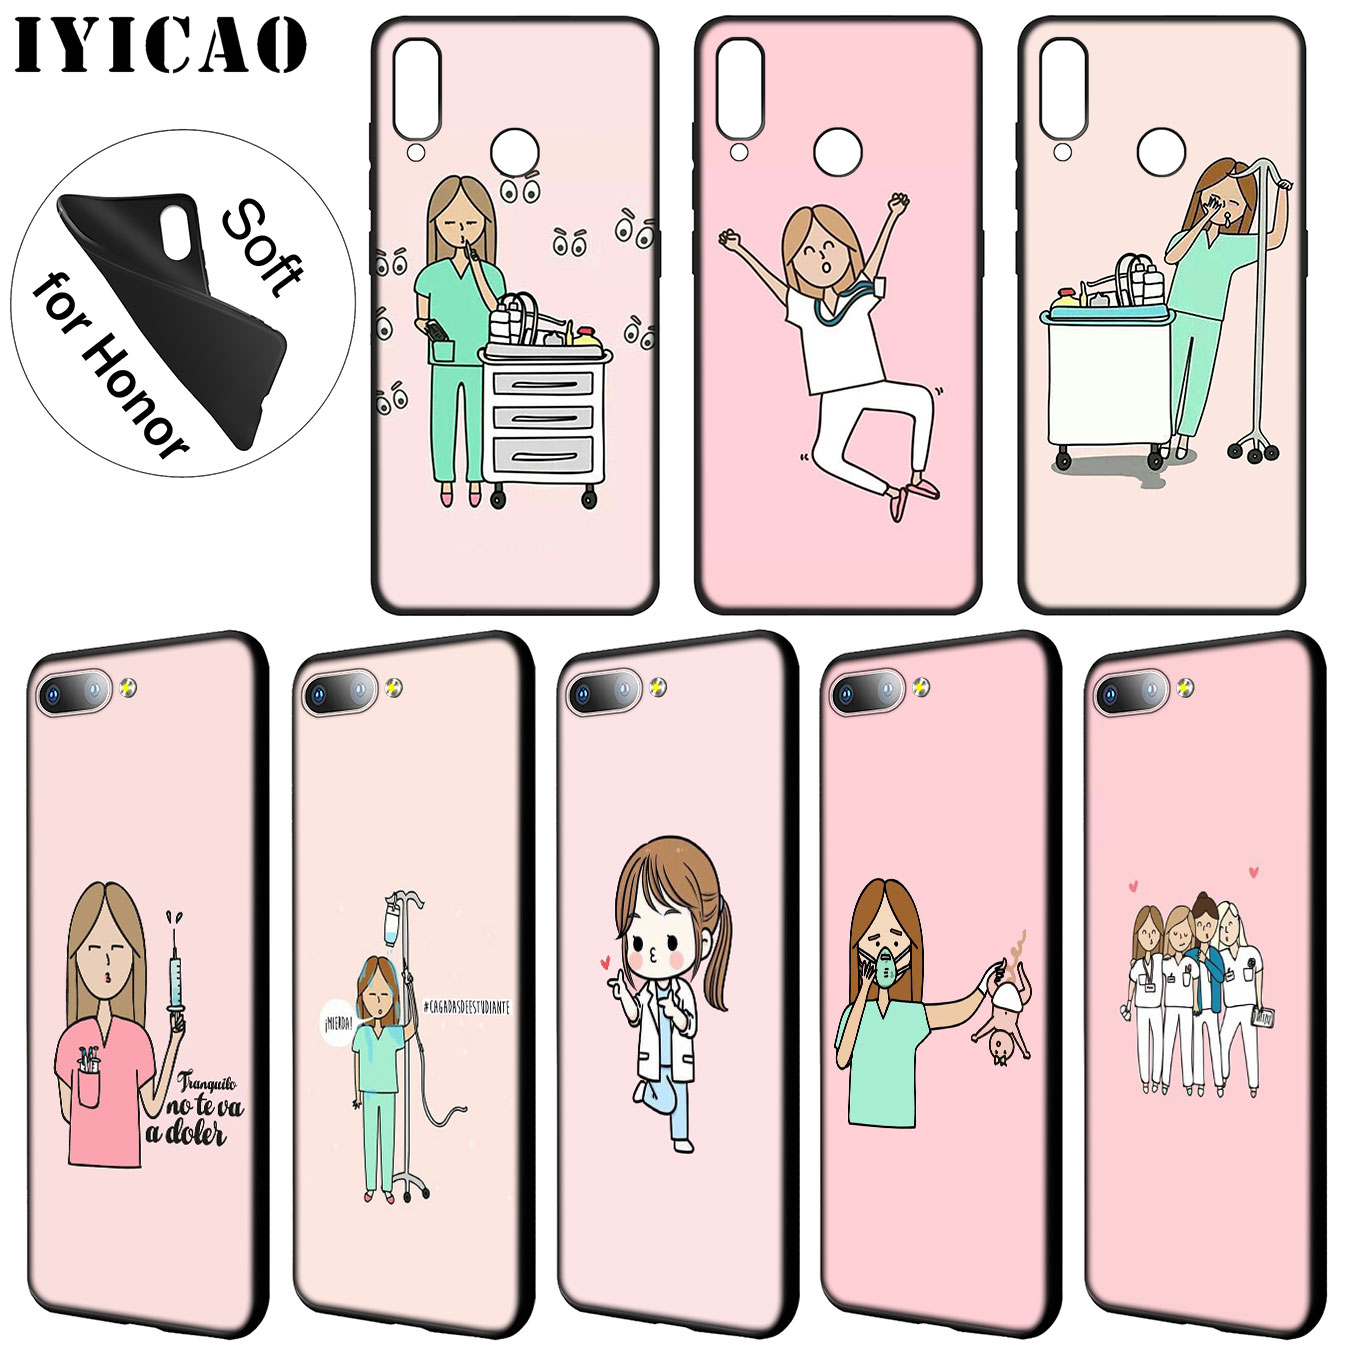 Smart Cartoon Doctor Nurse Hot Fashion Fun Dynamic Case For Huawei Y7 Y6 Prime Y9 2018 Y5 Honor 8c 8x 8 9 10 Lite 7c 7x 6a 7a Pro An Enriches And Nutrient For The Liver And Kidney Fitted Cases